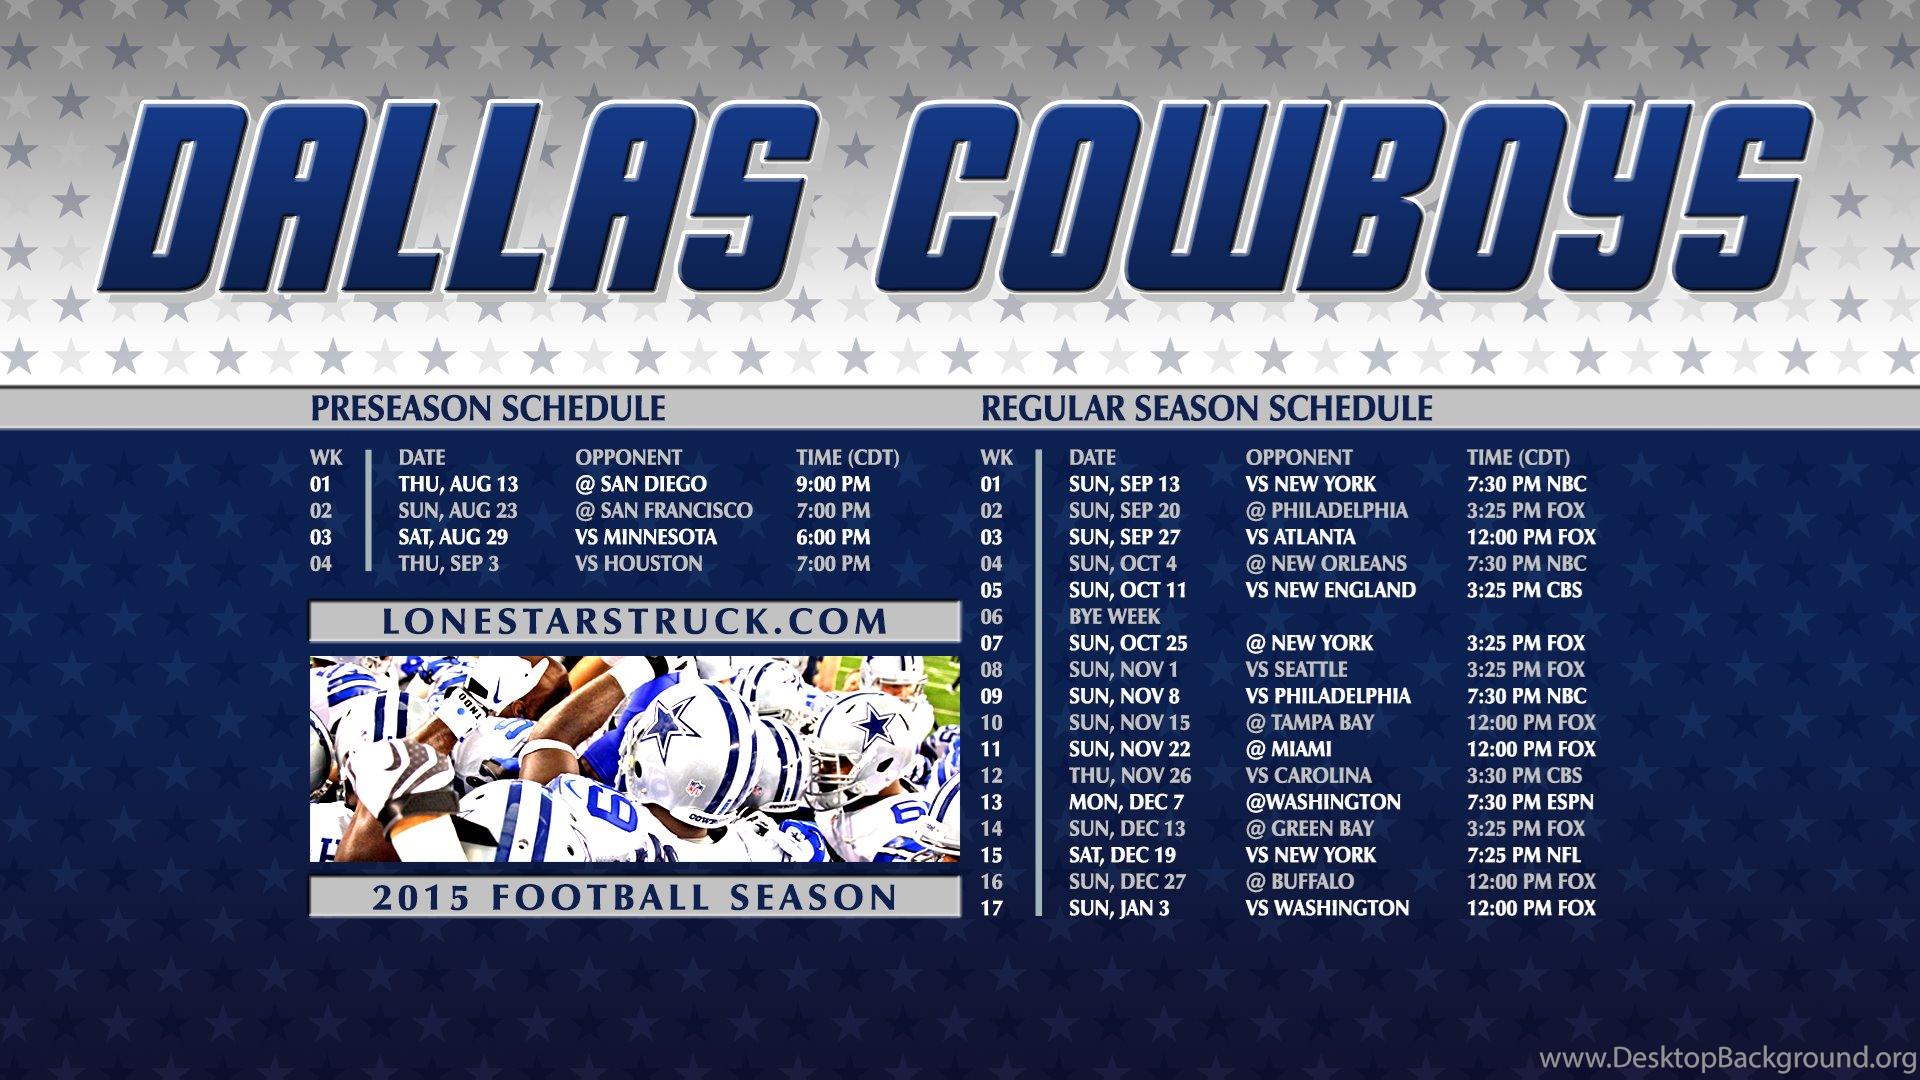 2015 wallpapers schedule lone star struck desktop background